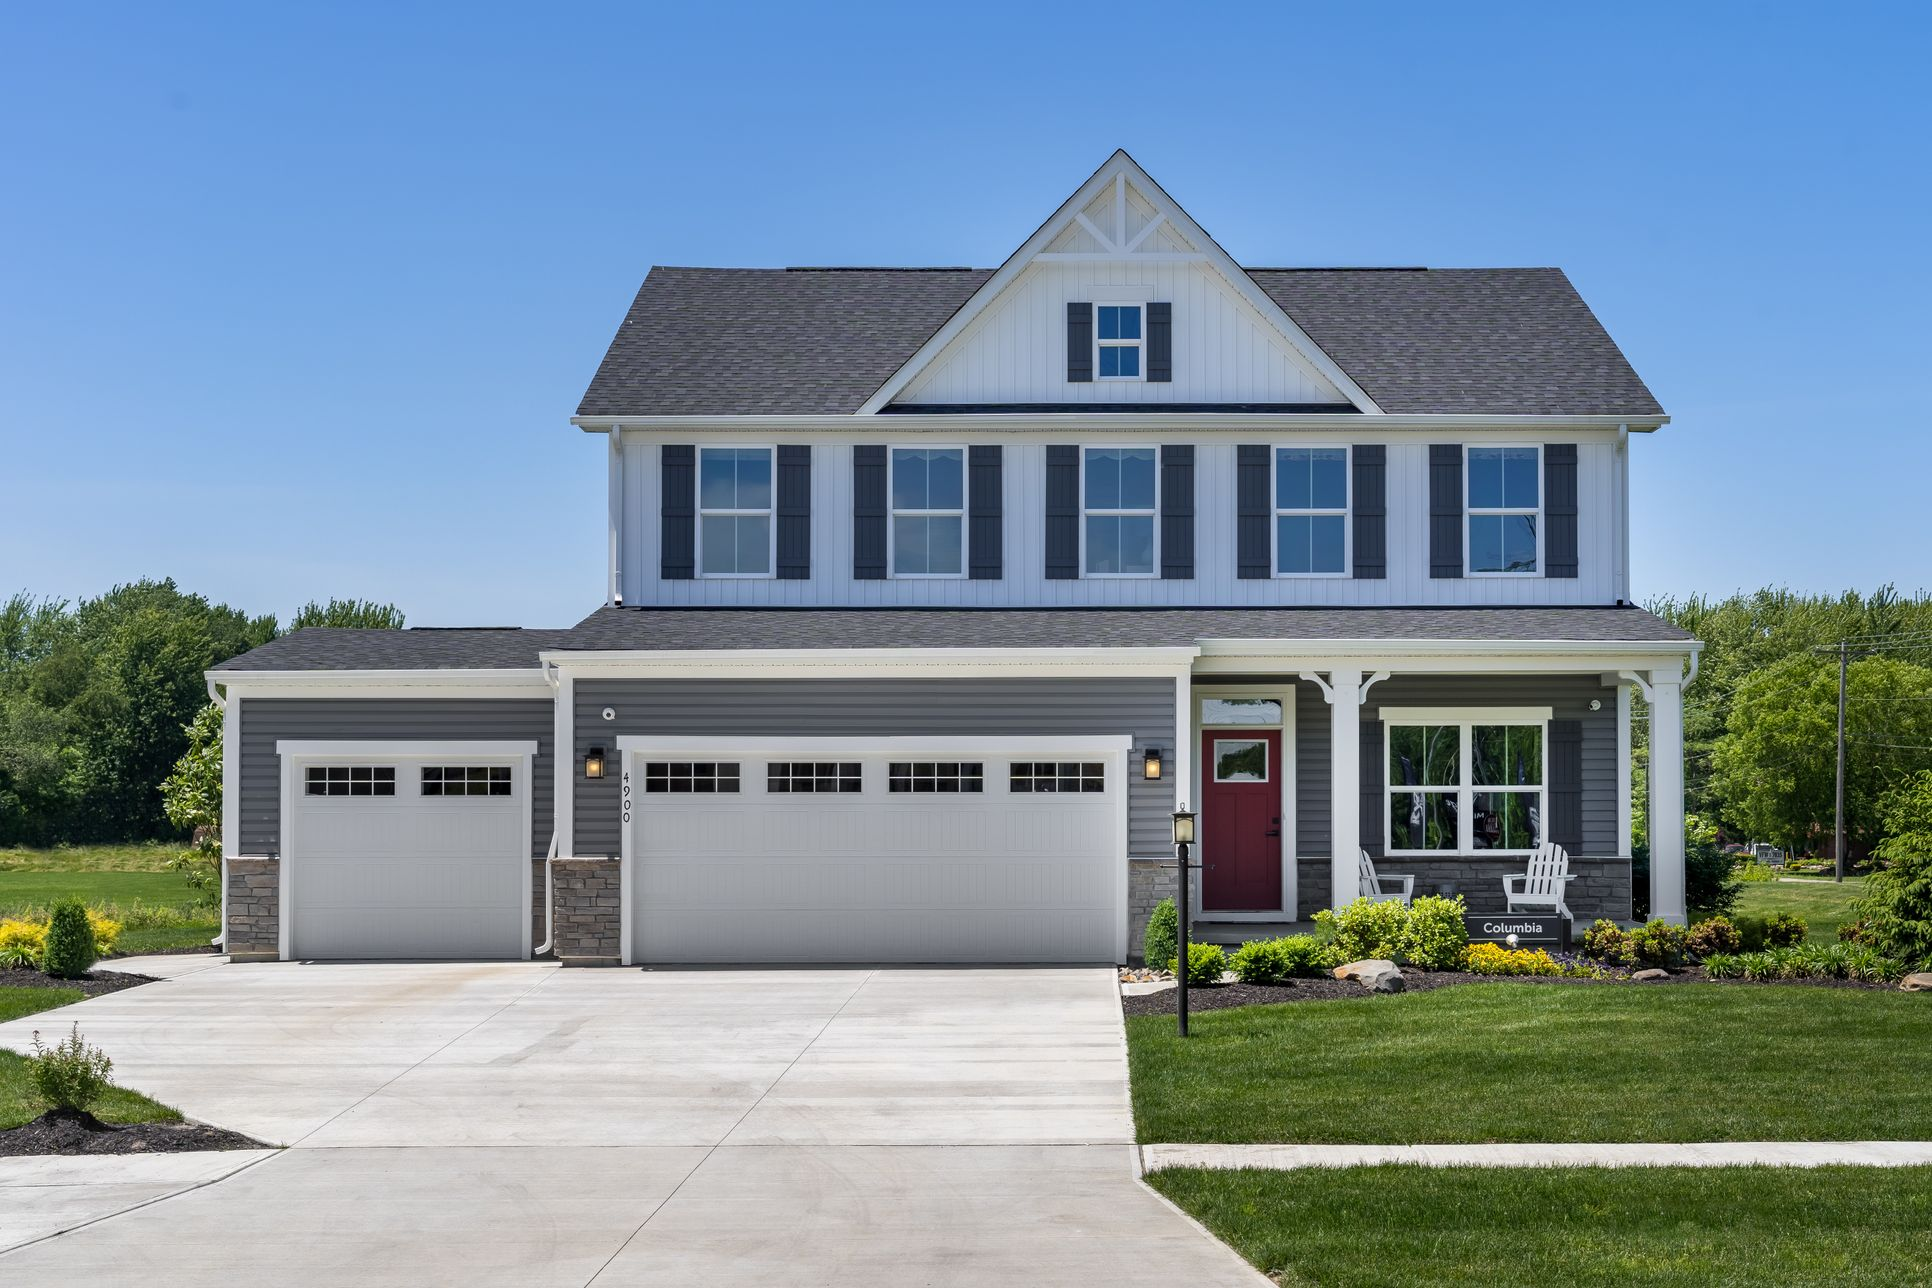 WELCOME HOME TO LEXINGTON FARMS:New homes in a peaceful community setting. Cul-de-sacs & yards up to a half acre. Prime location—walking/biking trails to Washington Square. Mid $200s.Click here to schedule your visit!